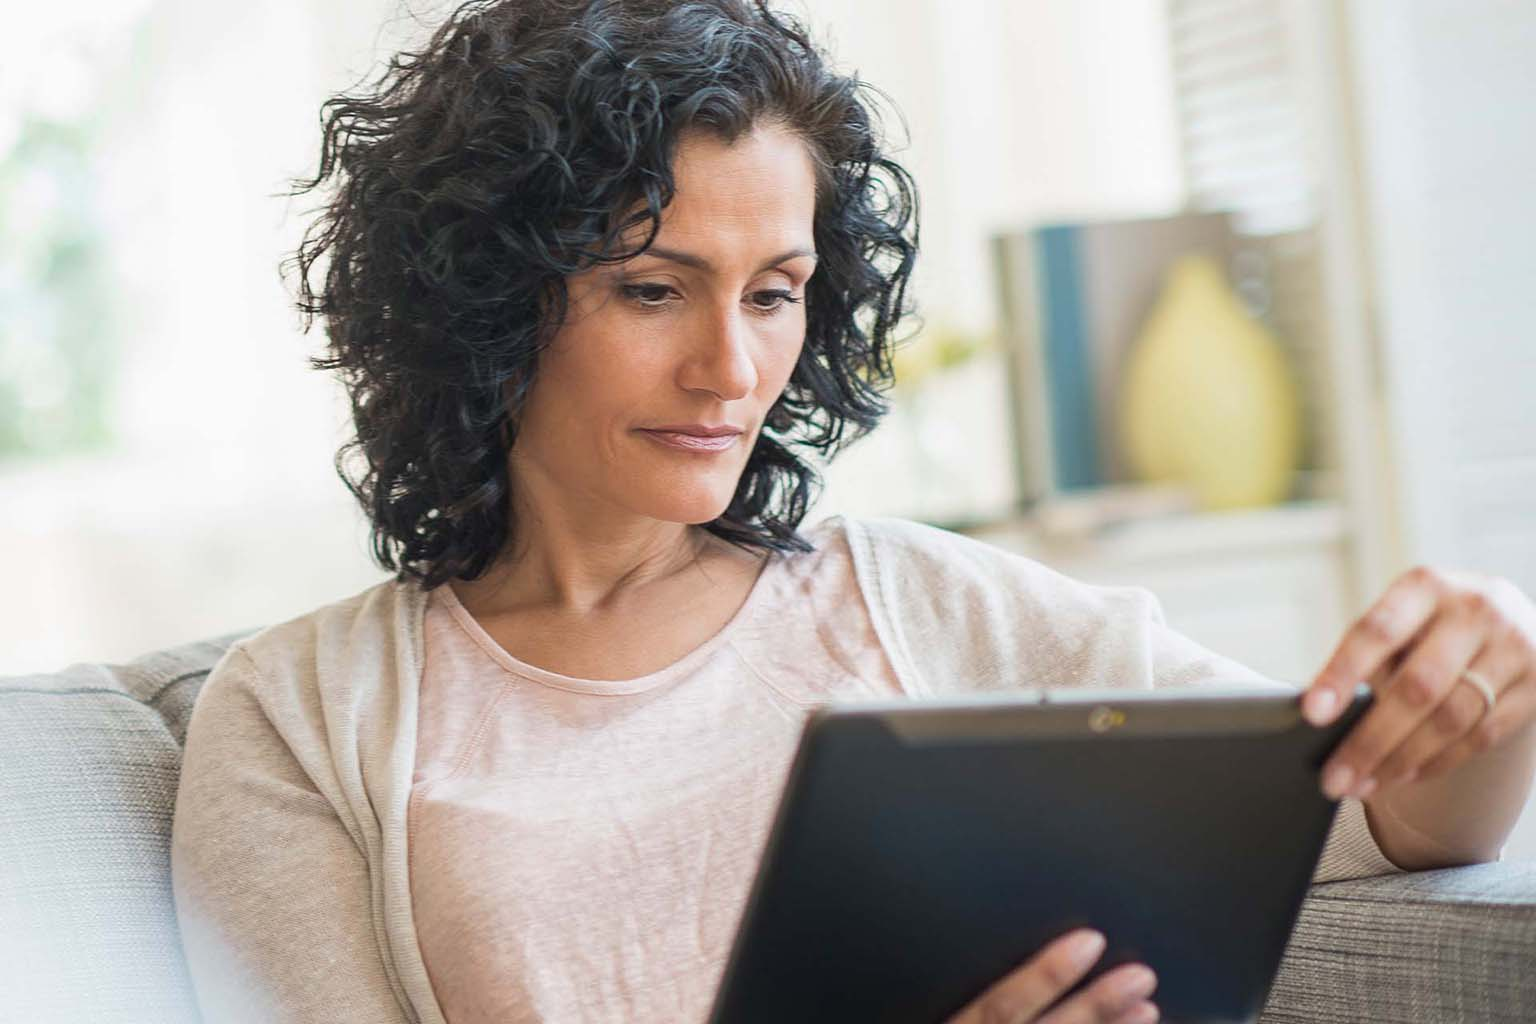 woman on couch using tablet